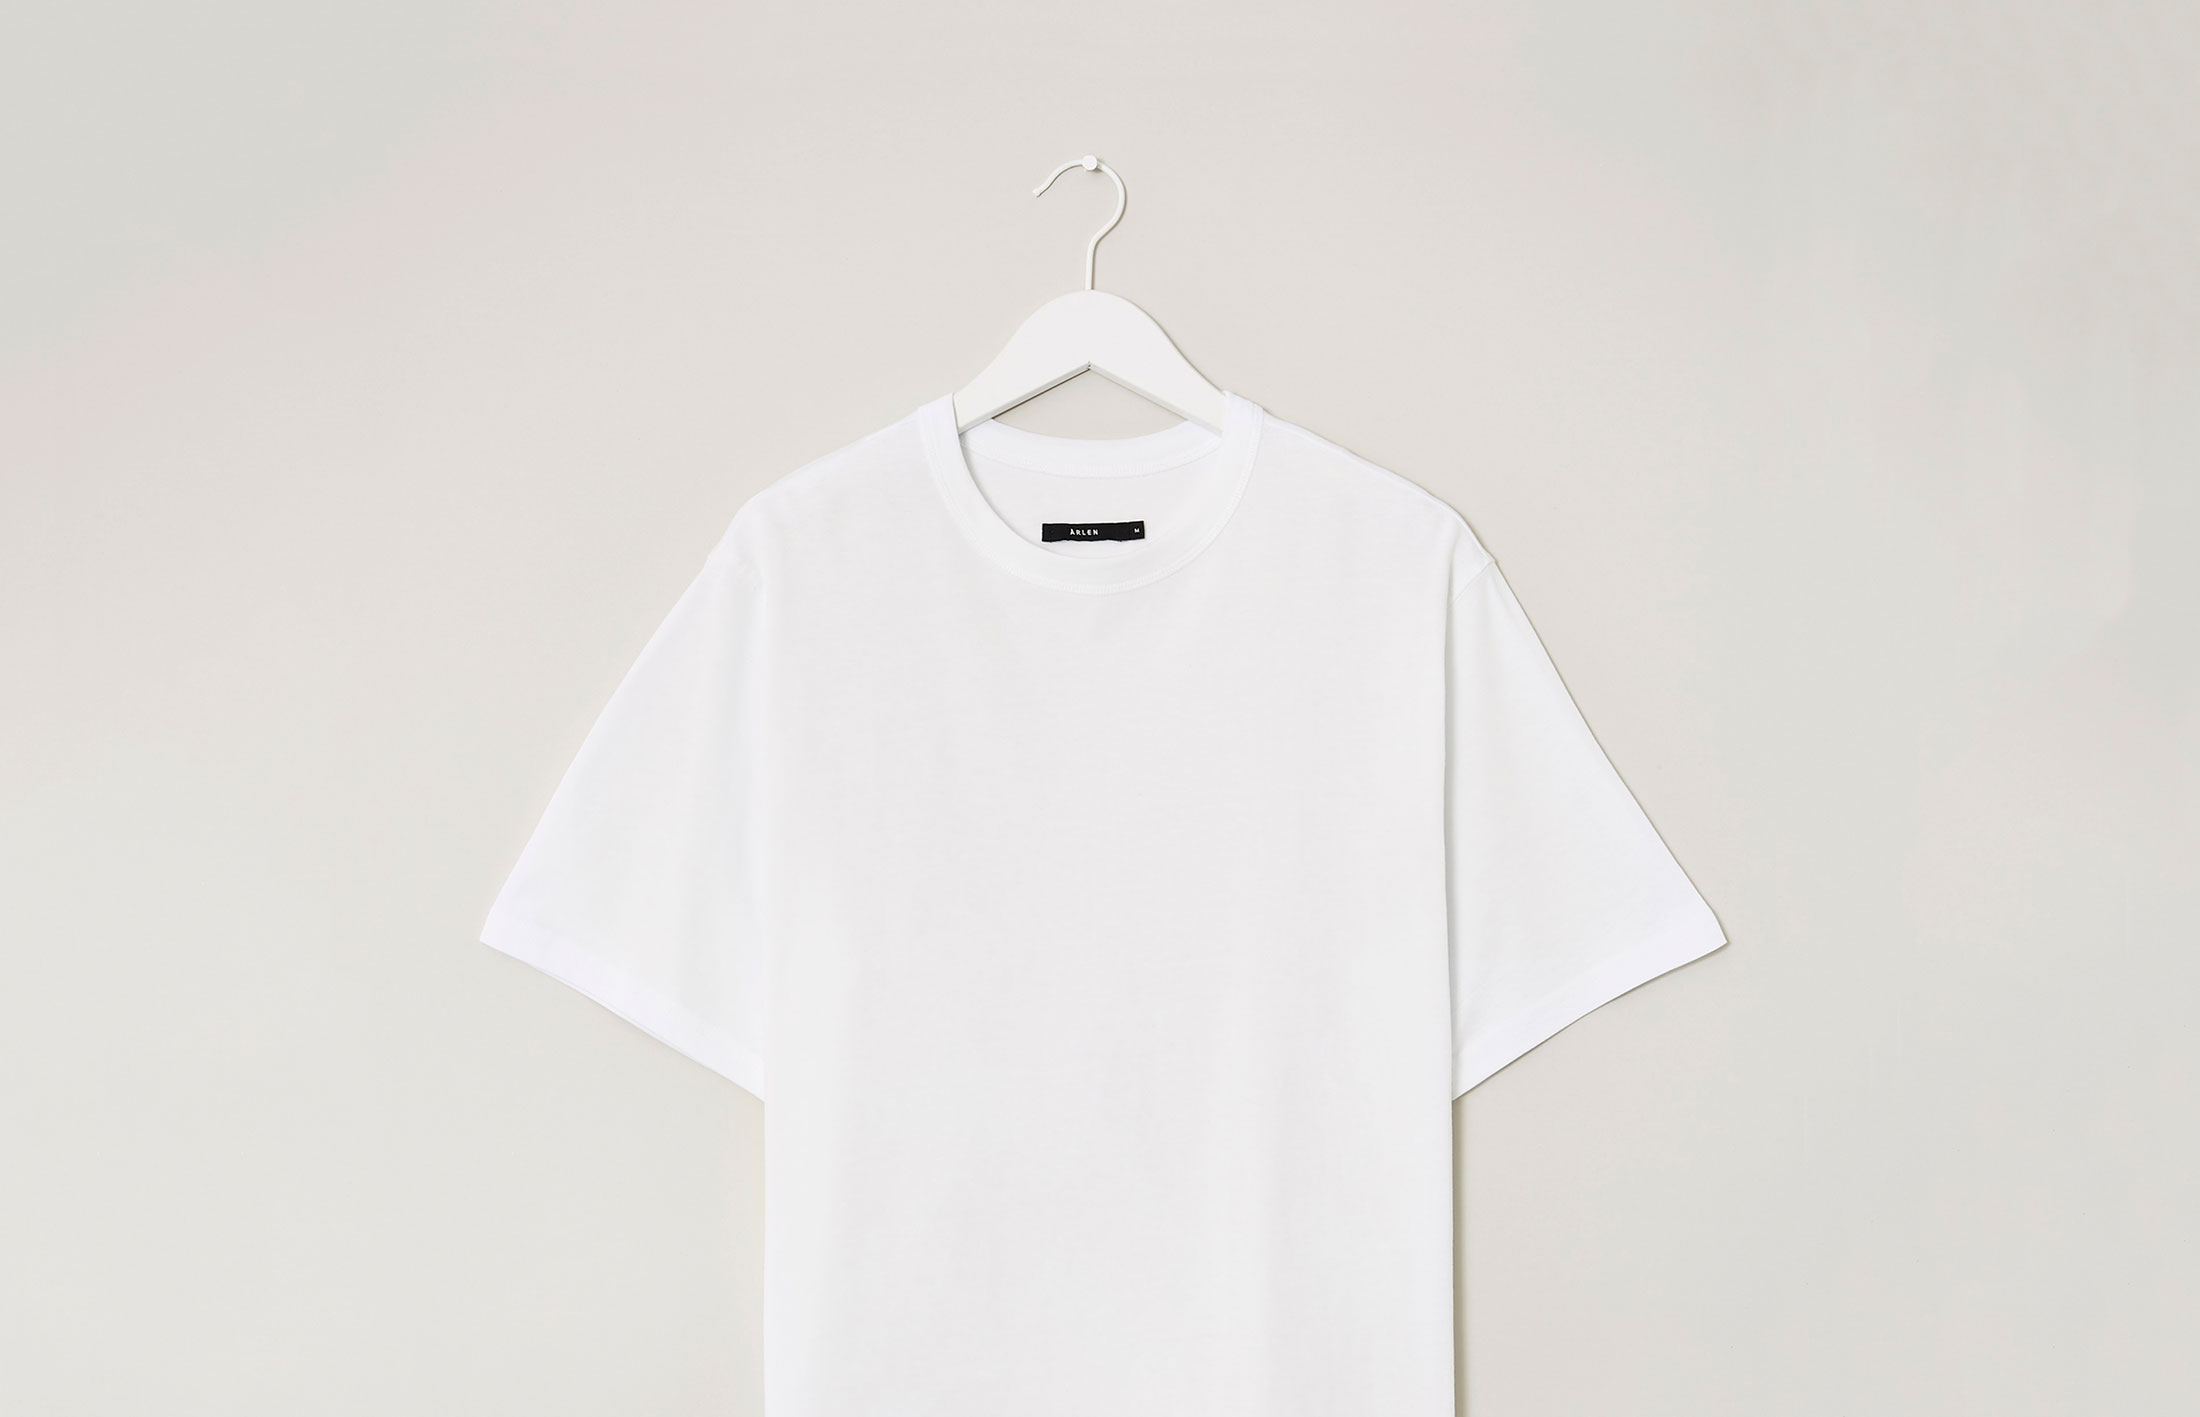 How to keep white tees and shirts white